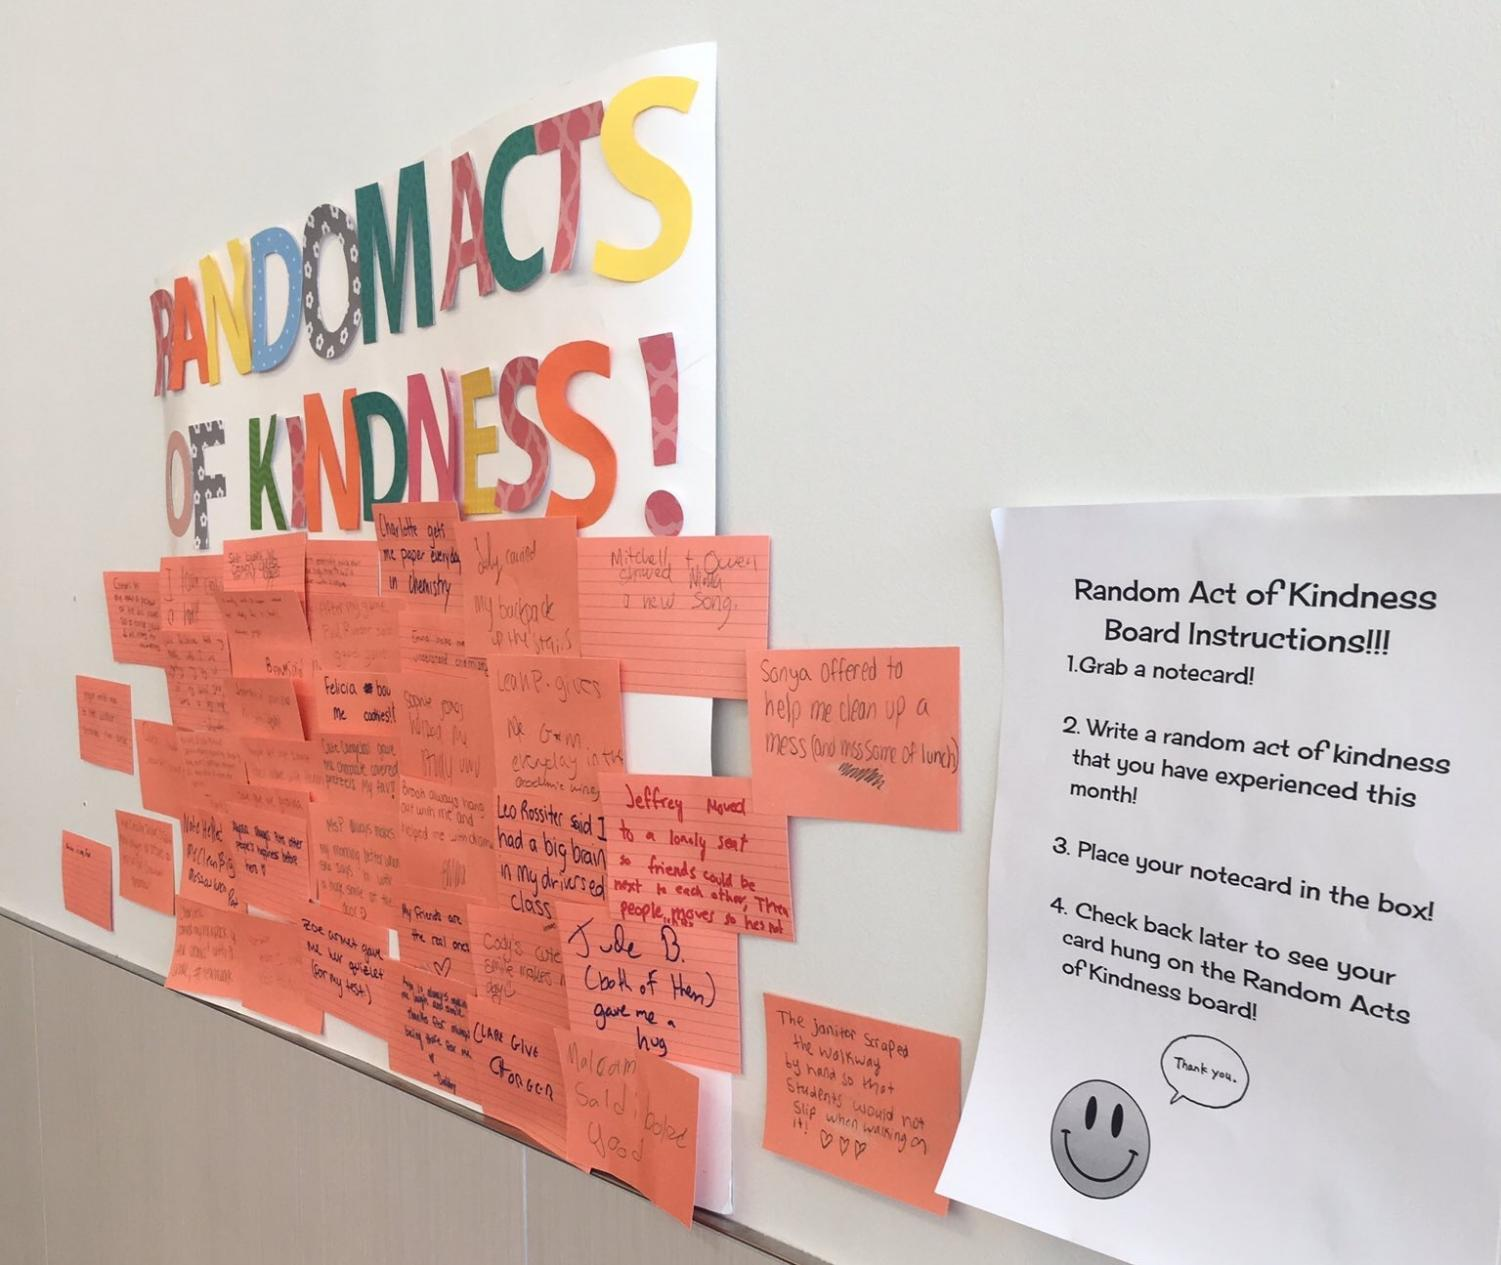 Peer Team's Random Acts of Kindness Board hangs in the cafeteria.